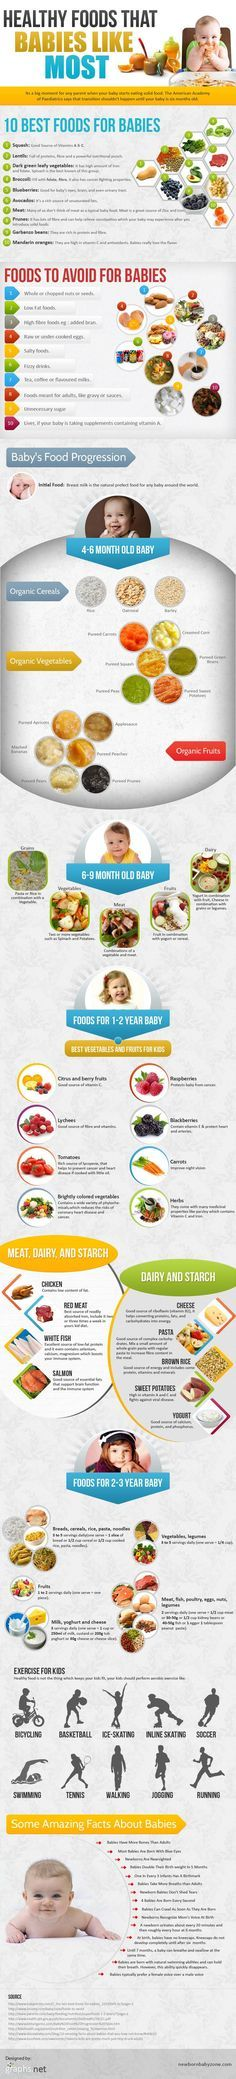 What Babies Can Eat Ages Newborn to 3 Years What Babies Can Eat: Ages Newborn to 3 Years... Need the reminder!